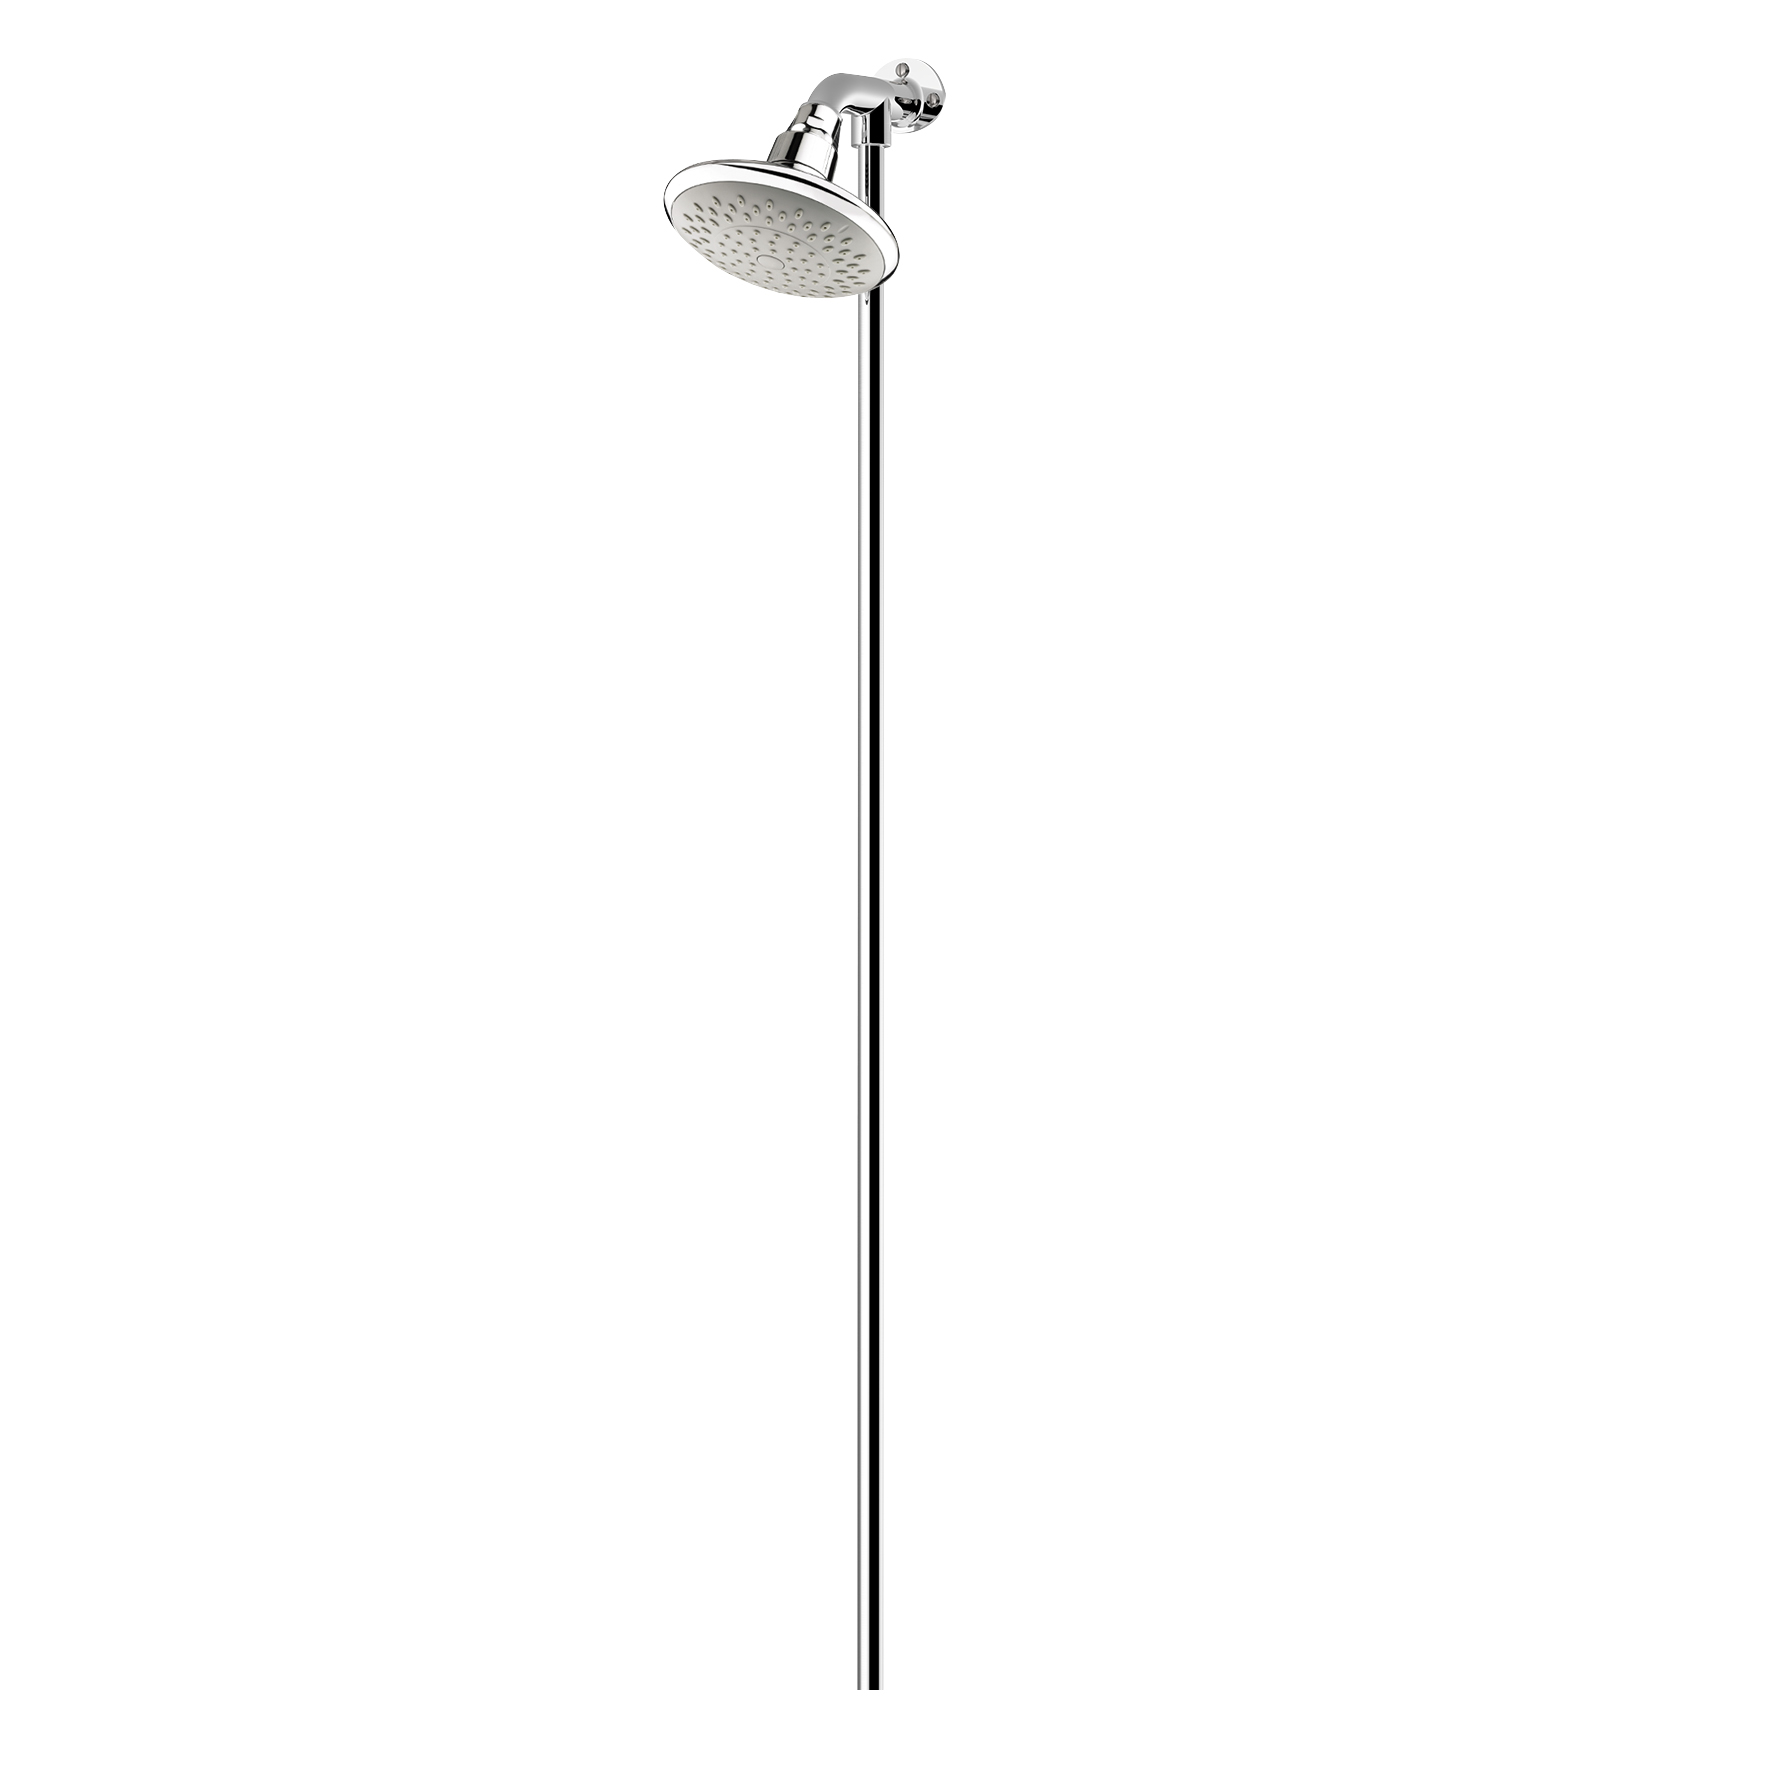 Fixed Shower Head with Rigid Riser